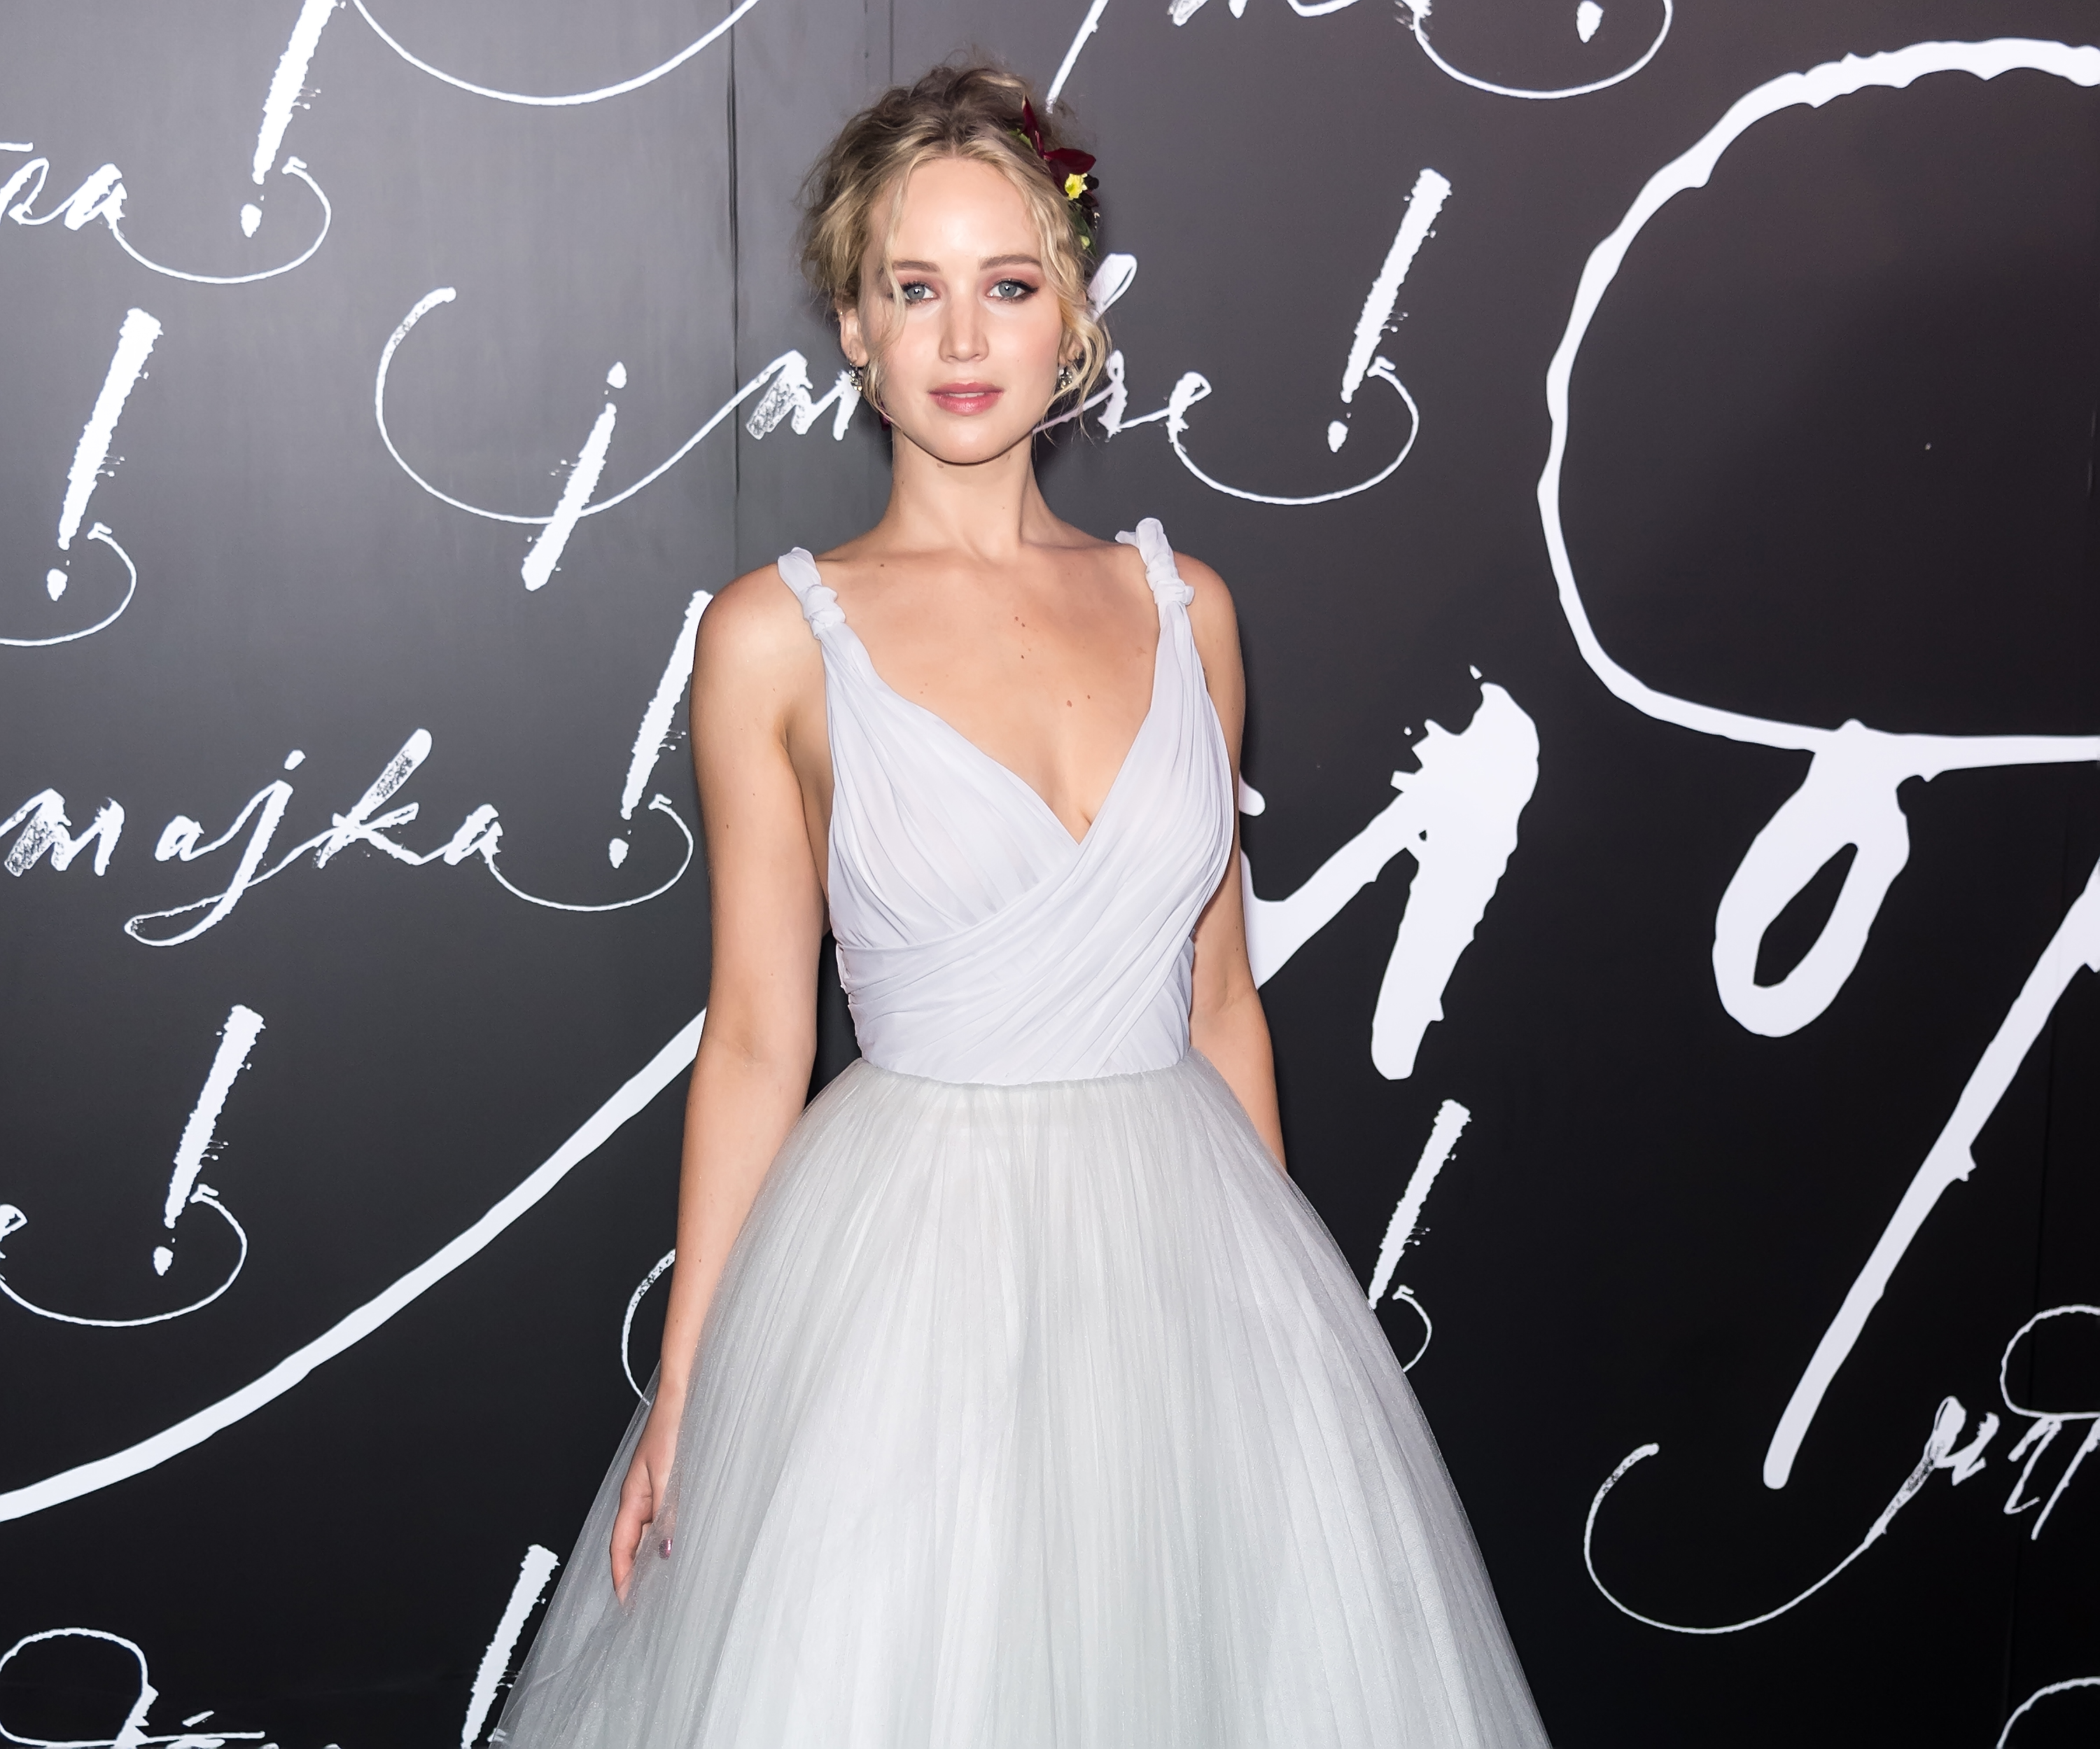 "<p><a href=""http://style.nine.com.au/2017/08/10/12/55/jennifer-lawrence-vogue-cover"" target=""_blank"" draggable=""false"">Academy Award-winner and Dior ambassador Jennifer Lawrence</a> was the bell of the ball last night at the New York City premiere of her new film, <em>Mother!</em></p> <p>The 27-year-old actress and star of the upcoming horror flick ruled the red carpet in a dreamy, floor-length white haute couture gown from the French fashion house, but her best accessory for the night was her boyfriend and <em>Mother!</em>'s director, Darren Aronofsky. </p> <p>The private pair have been dating for over a year and marked the occasion with their first-ever public appearance together as a couple and a celebration of their work together.</p> <p>""I was such a huge fan of all of his work. I just think he's so bold and unafraid and that's exactly what I saw. That's exactly what I witnessed—even more so,"" Lawrence told <em><a href=""http://people.com/movies/jennifer-lawrence-is-taking-a-two-year-hiatus-from-acting-jokes-shell-start-making-pots/"" target=""_blank"">People.</a></em></p> <p>Javier Bardem, Liev Schreiber, <em>Felicity </em>star Keri Russell, and Harry Connick Jr. were some of the other high-profile names that joined the duo on the red carpet at Radio City Hall.</p> <p>Click through to see the star-studded premiere of Mother!.</p>"